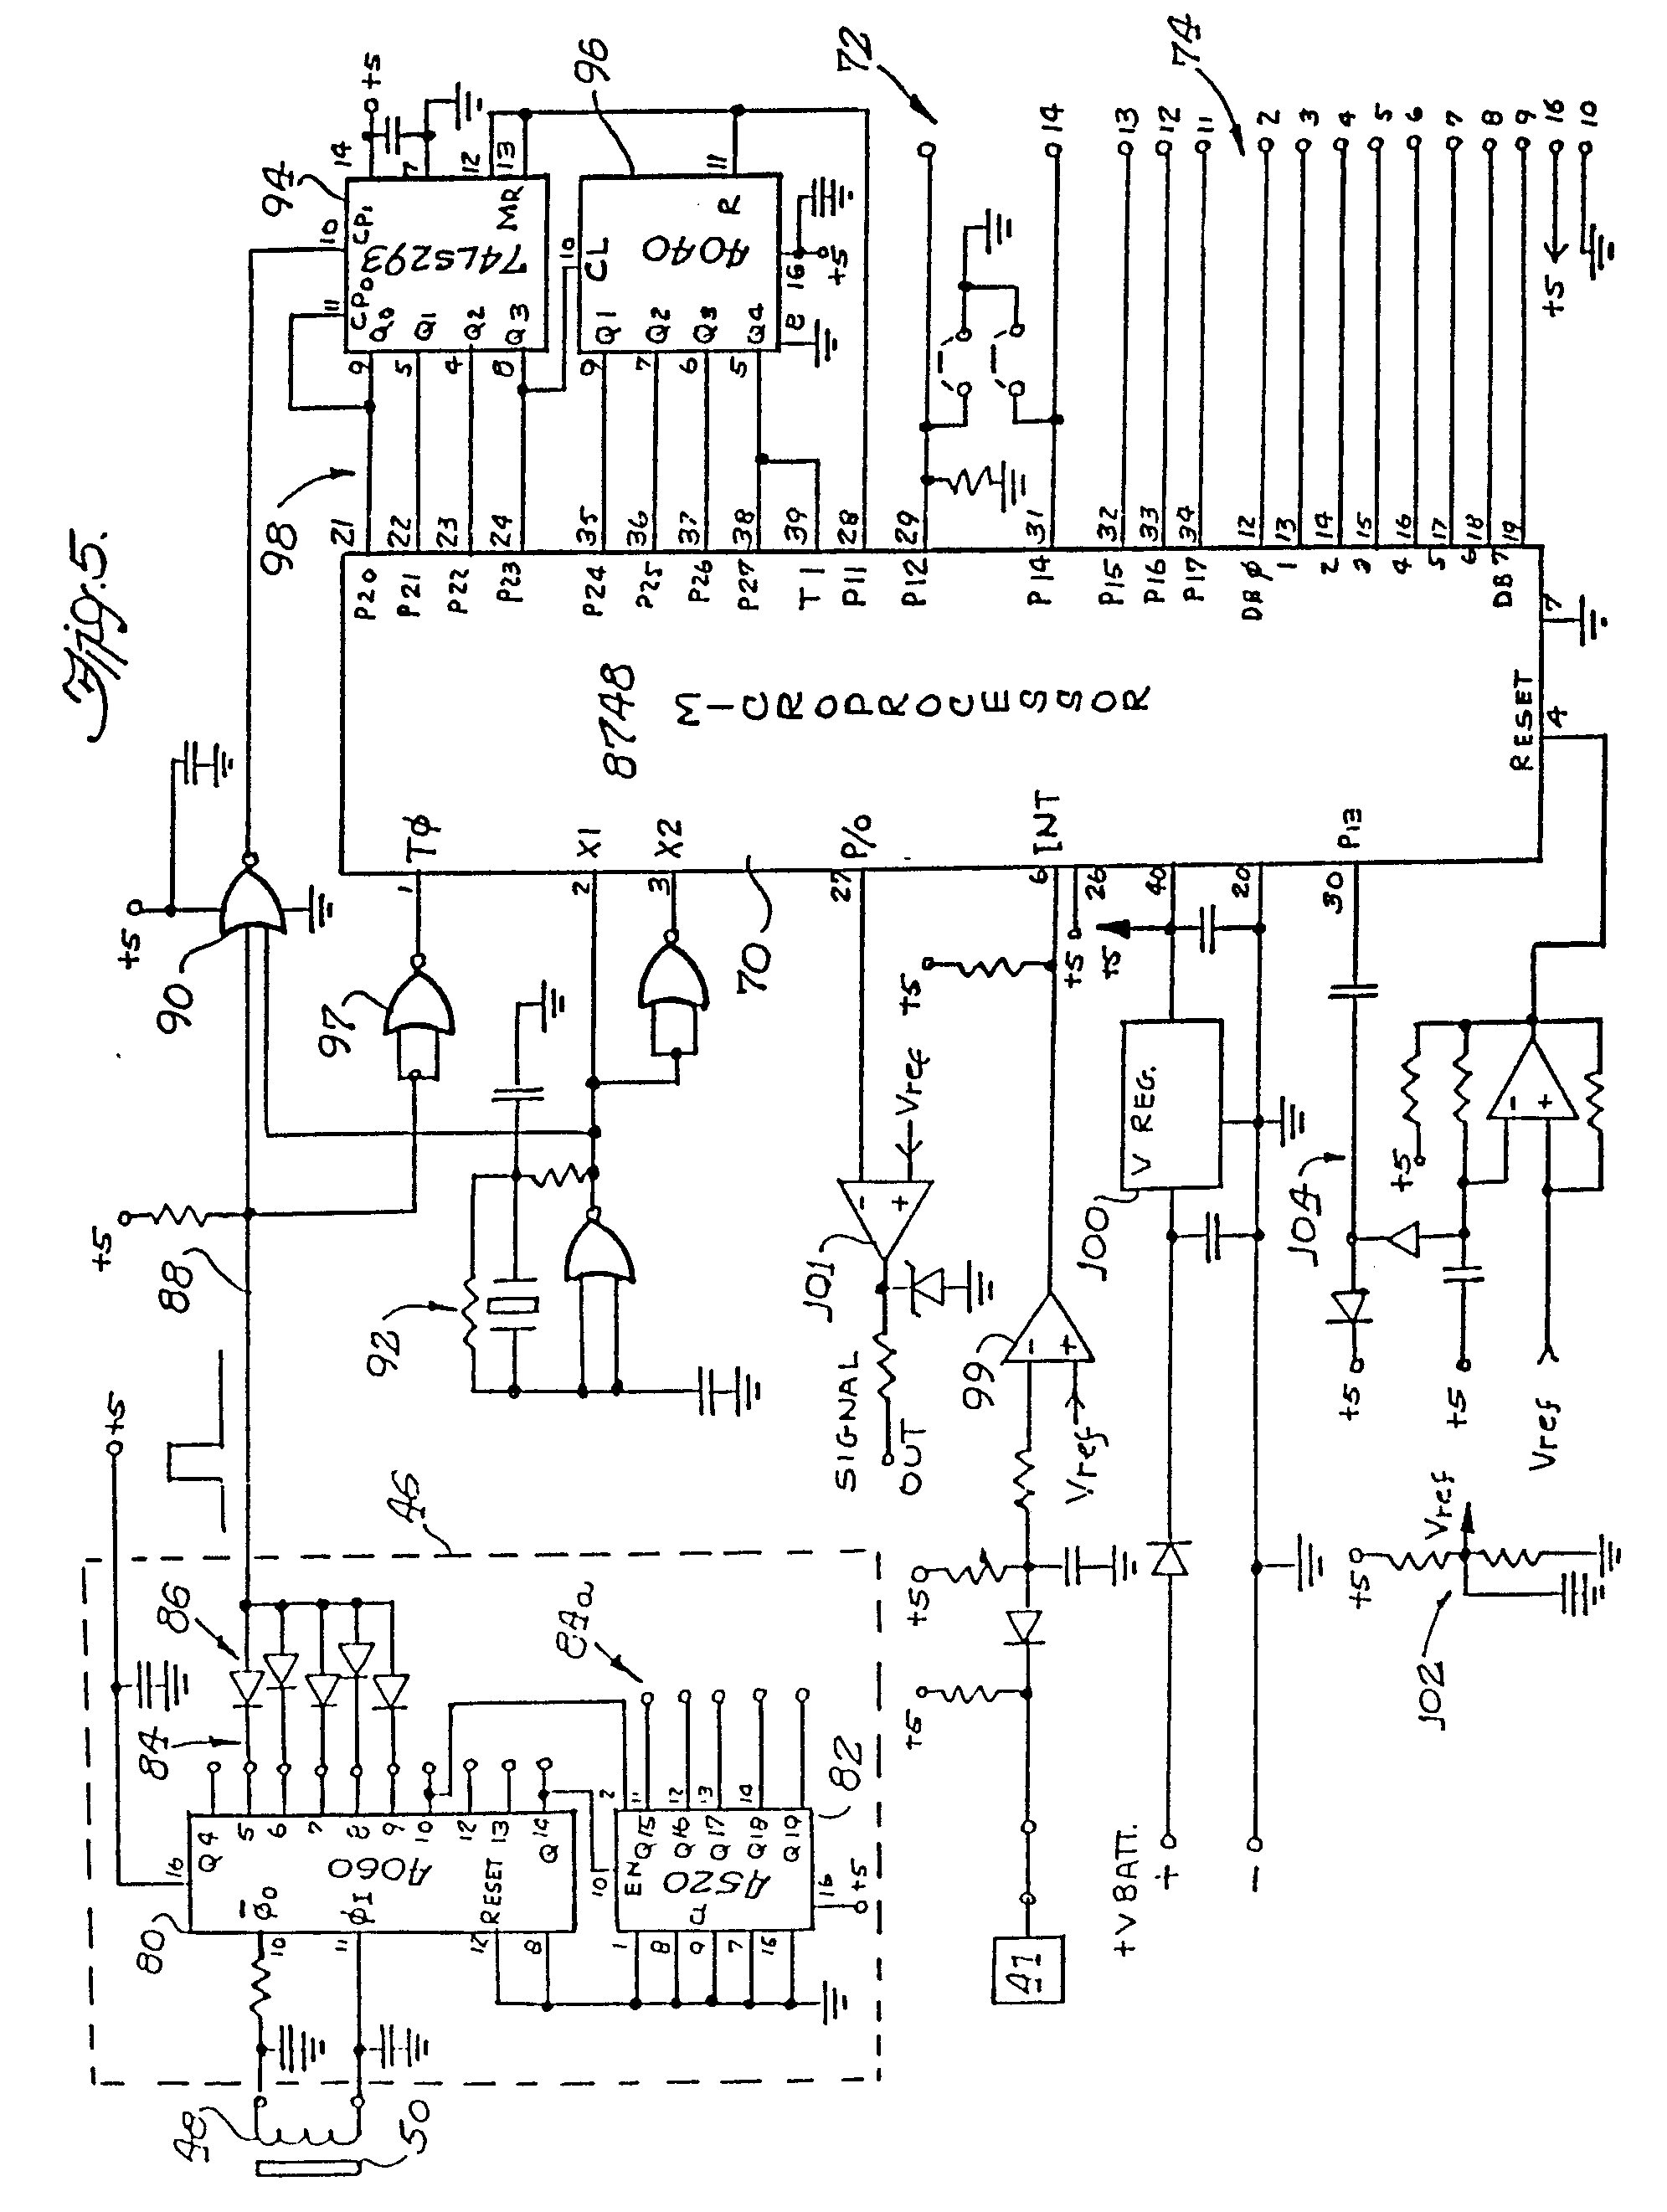 1950 farmall cub wiring diagram